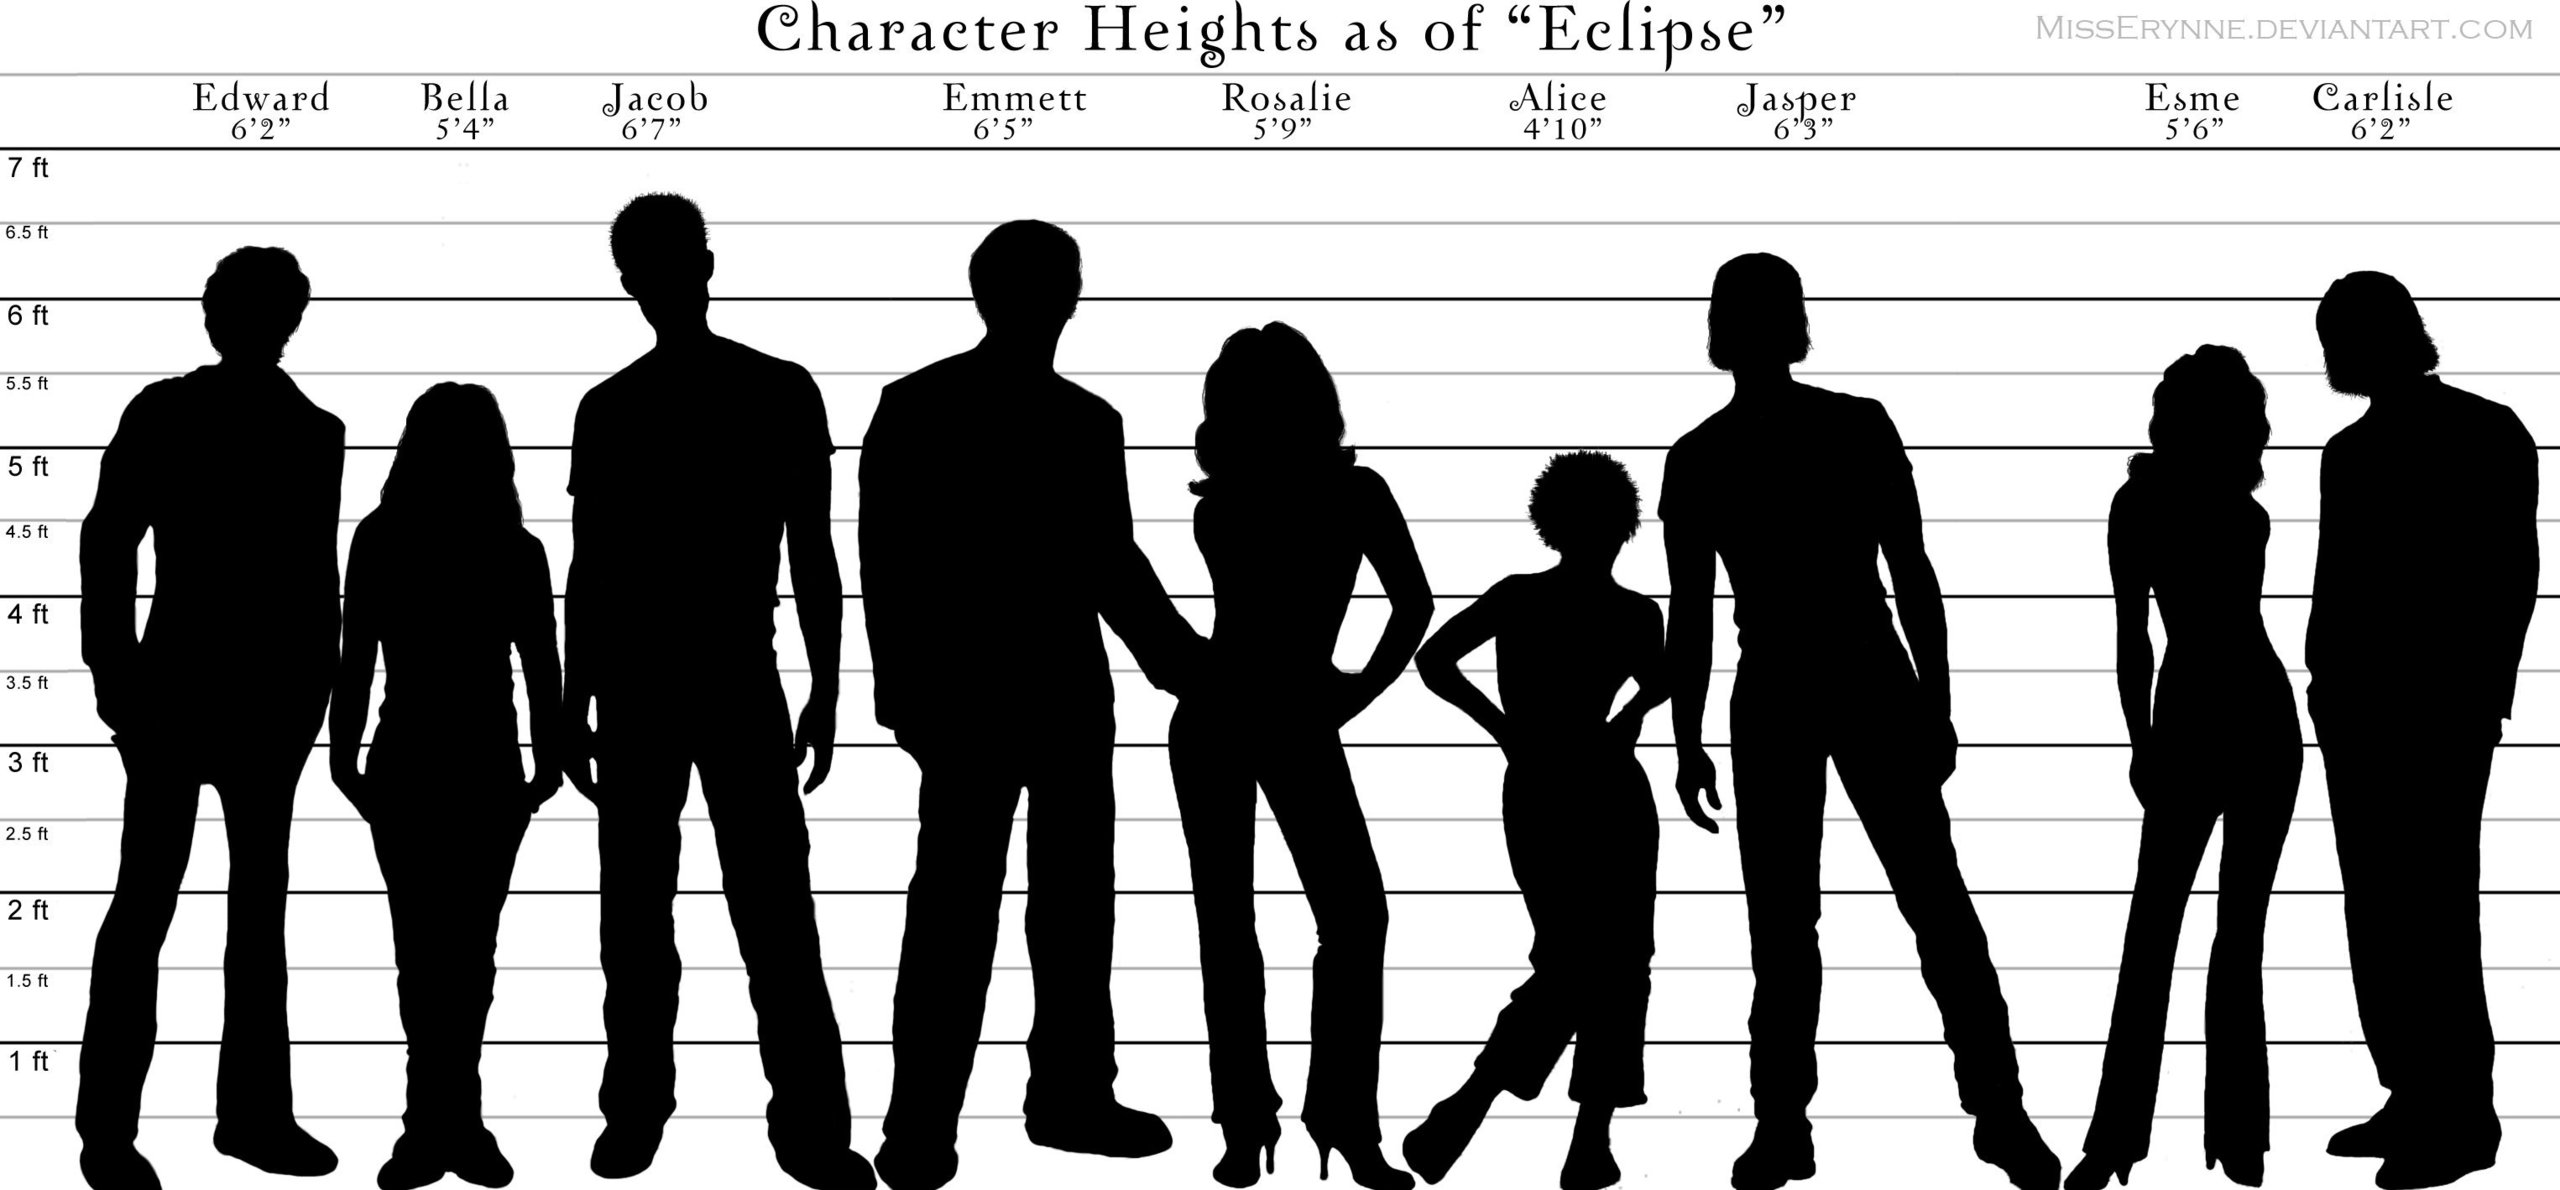 Twilight series chart character heights comparison